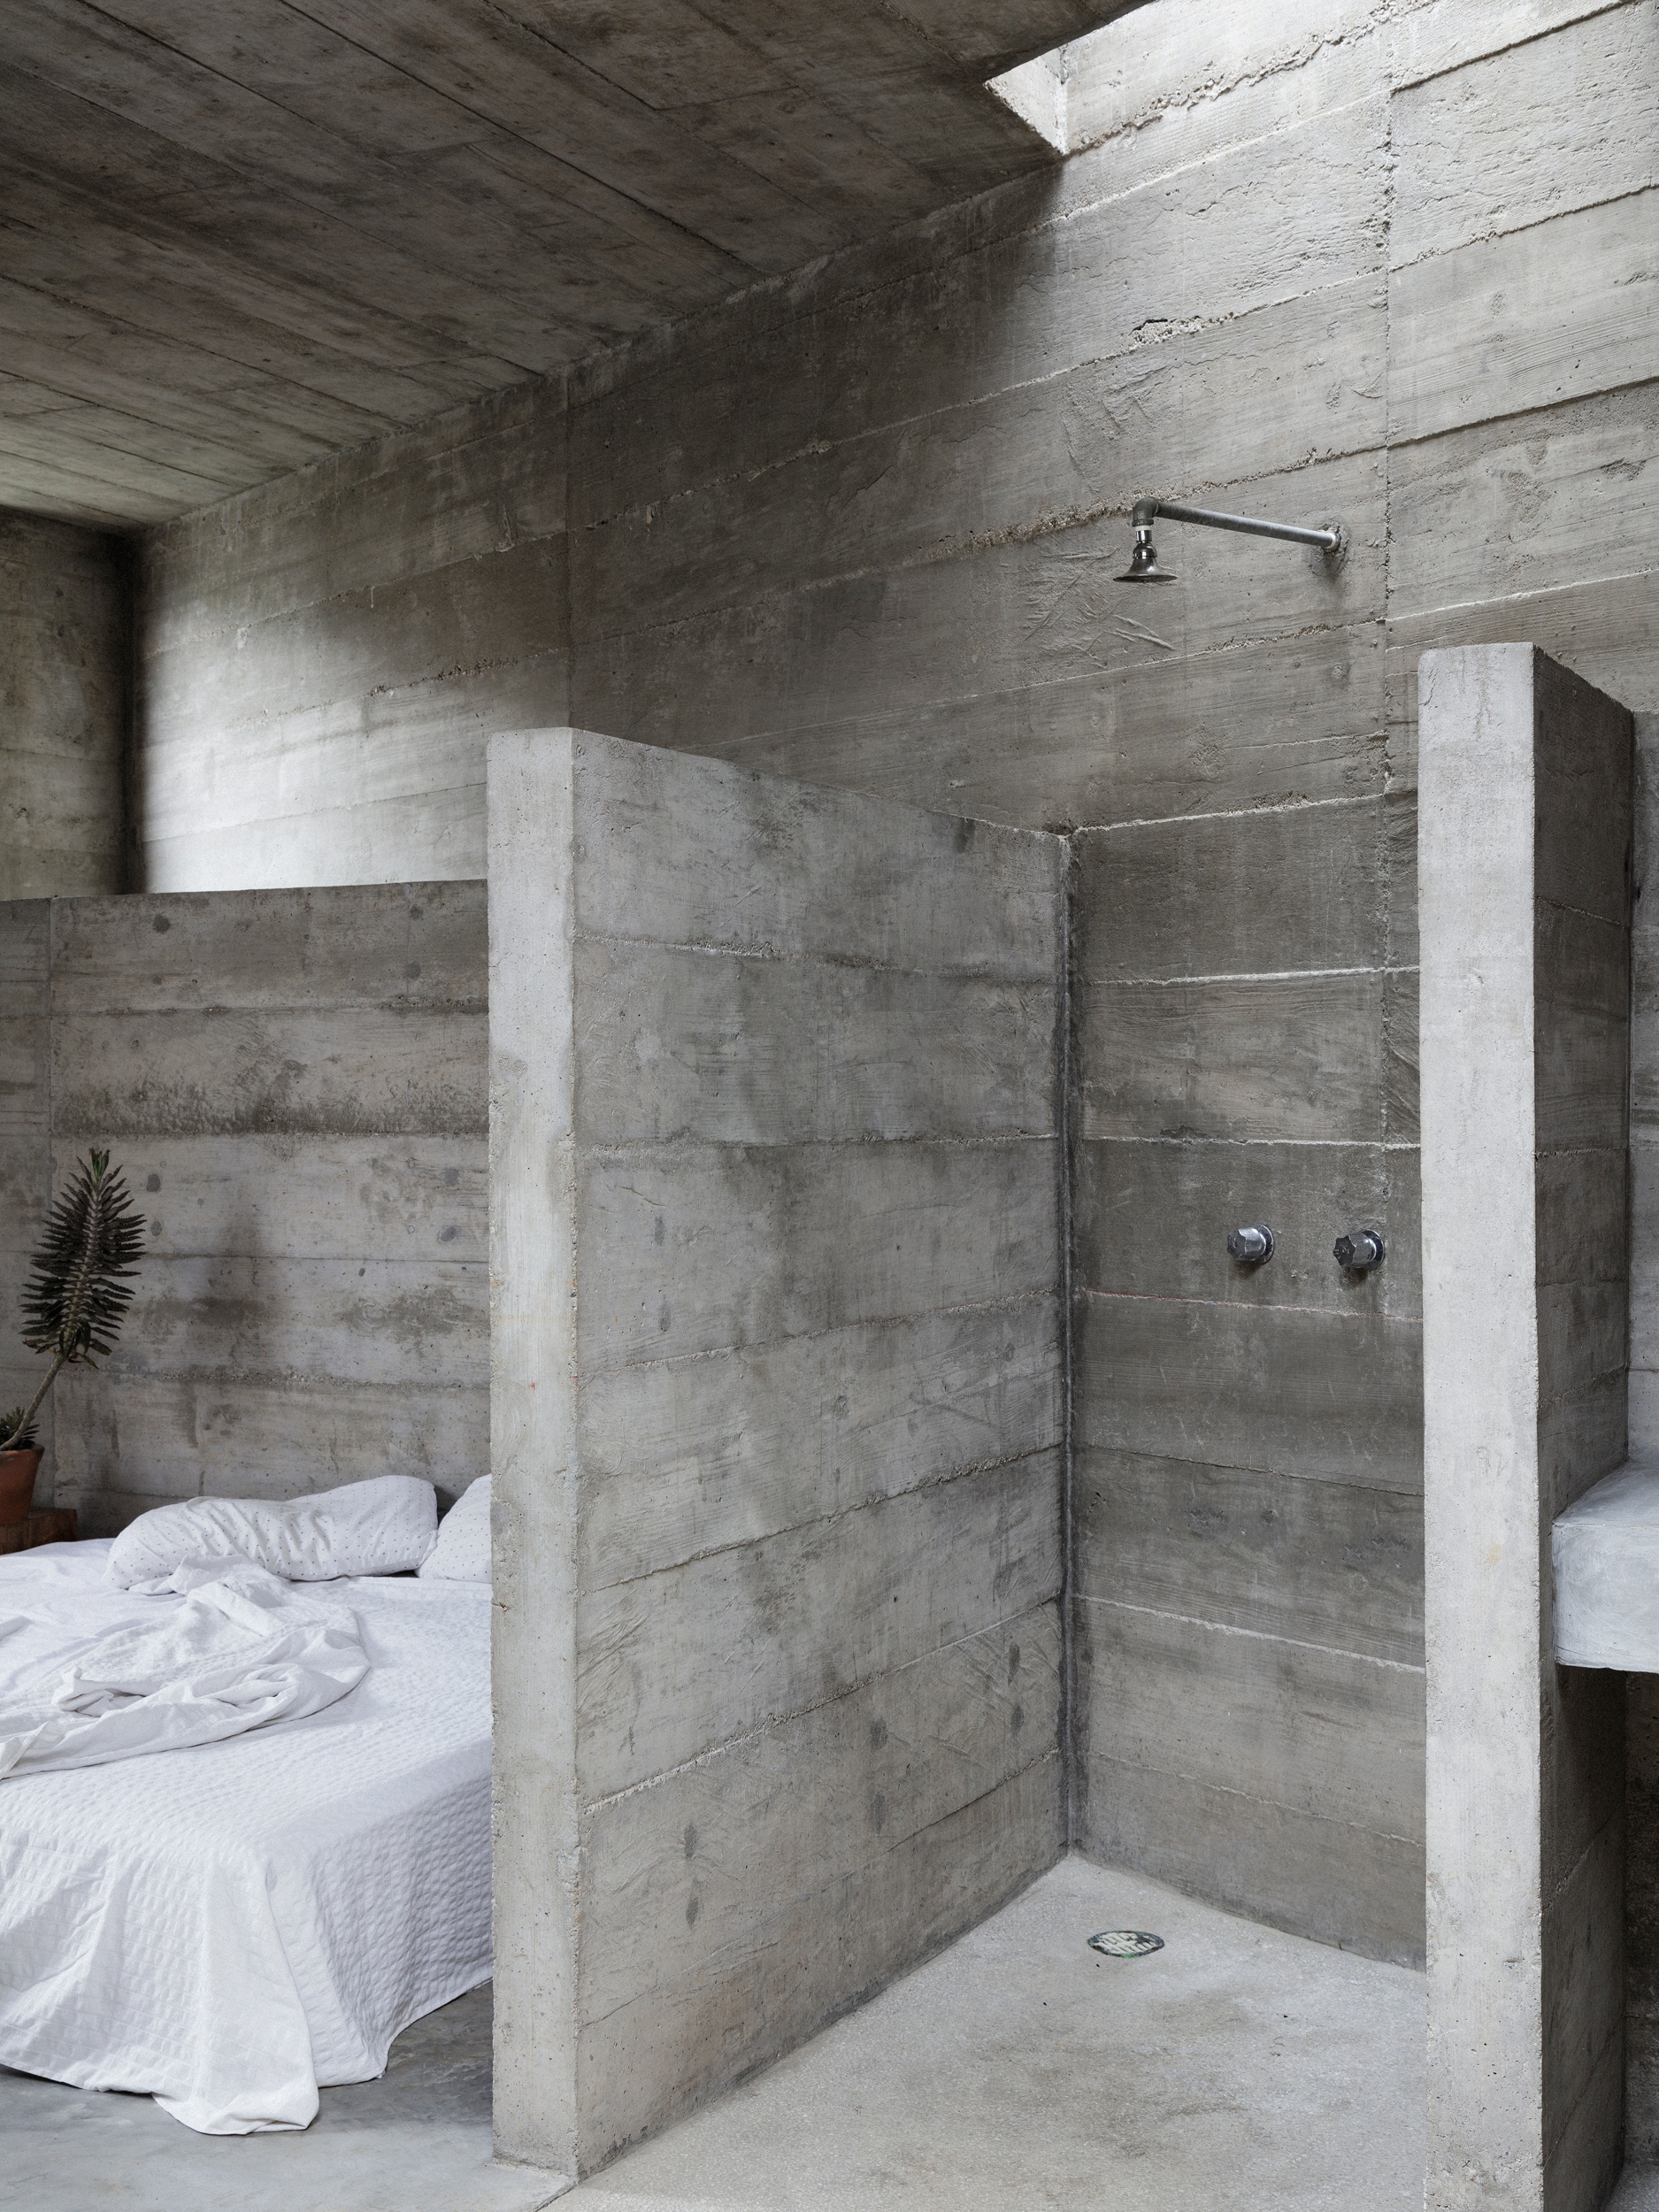 The glass-less bedrooms with concrete floors have minimal furnishings | Zicatela House | Mexico | Ludwig Godefroy |STIRworld